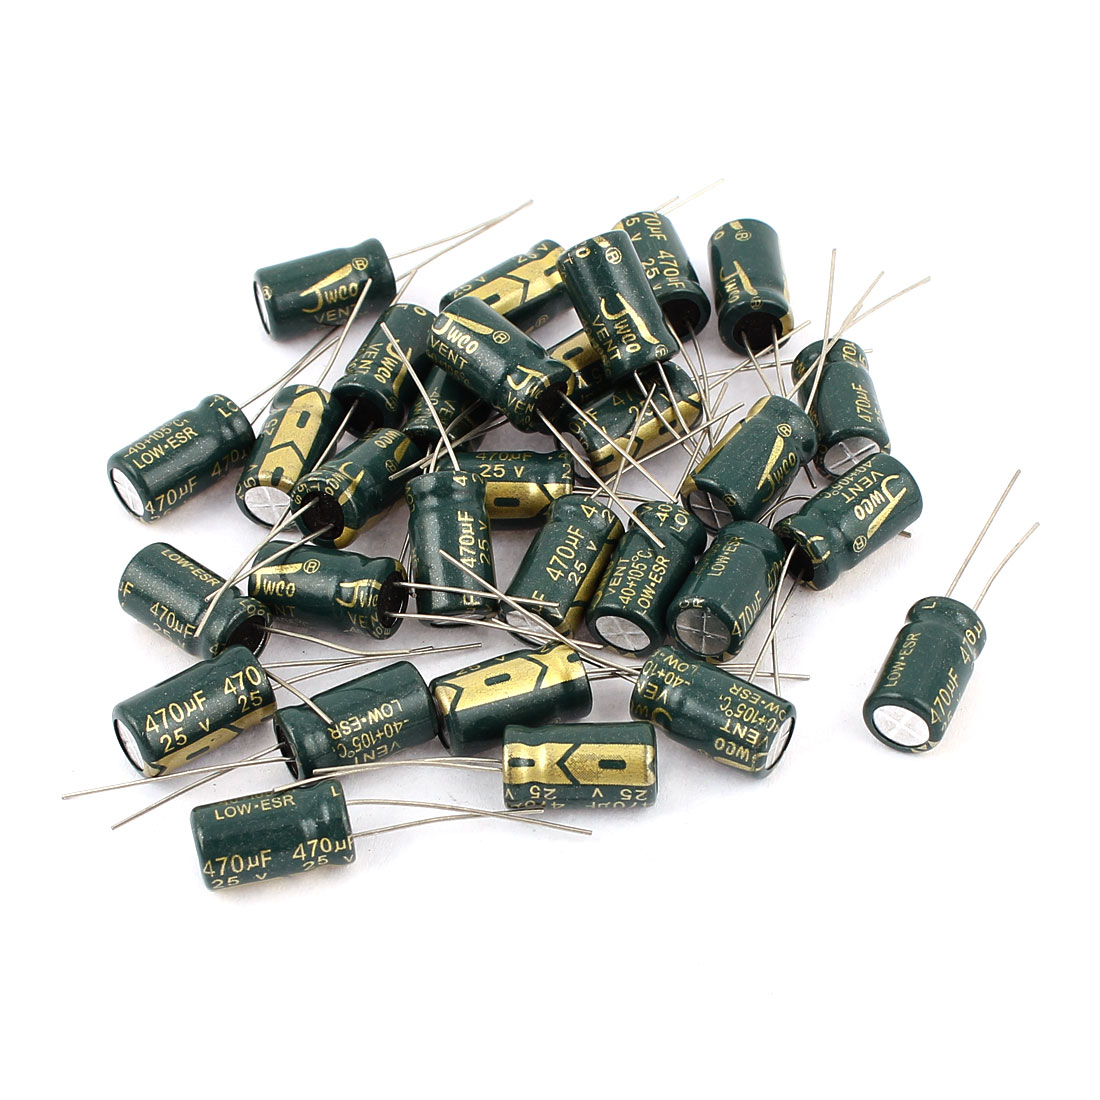 30pcs 8 x 14mm Motherboard Radial Lead Electrolytic Capacitor 105C 470uF 25V